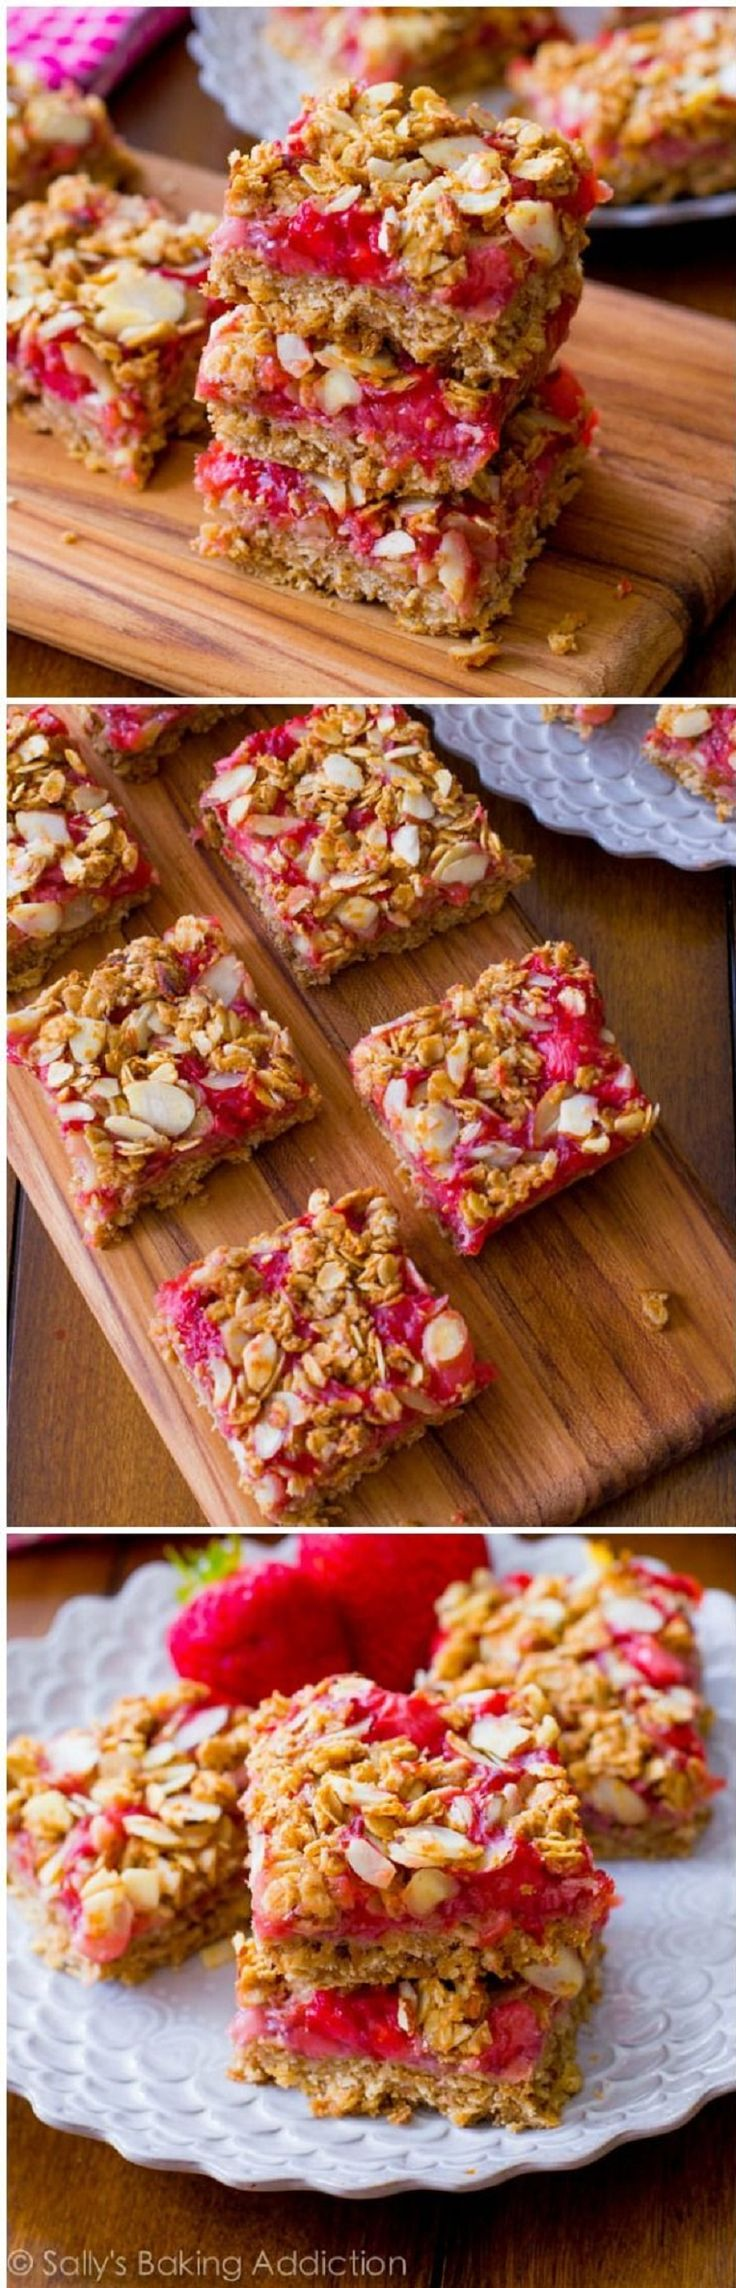 Healthy-Strawberry-Oat-Squares.jpg (763×2372)